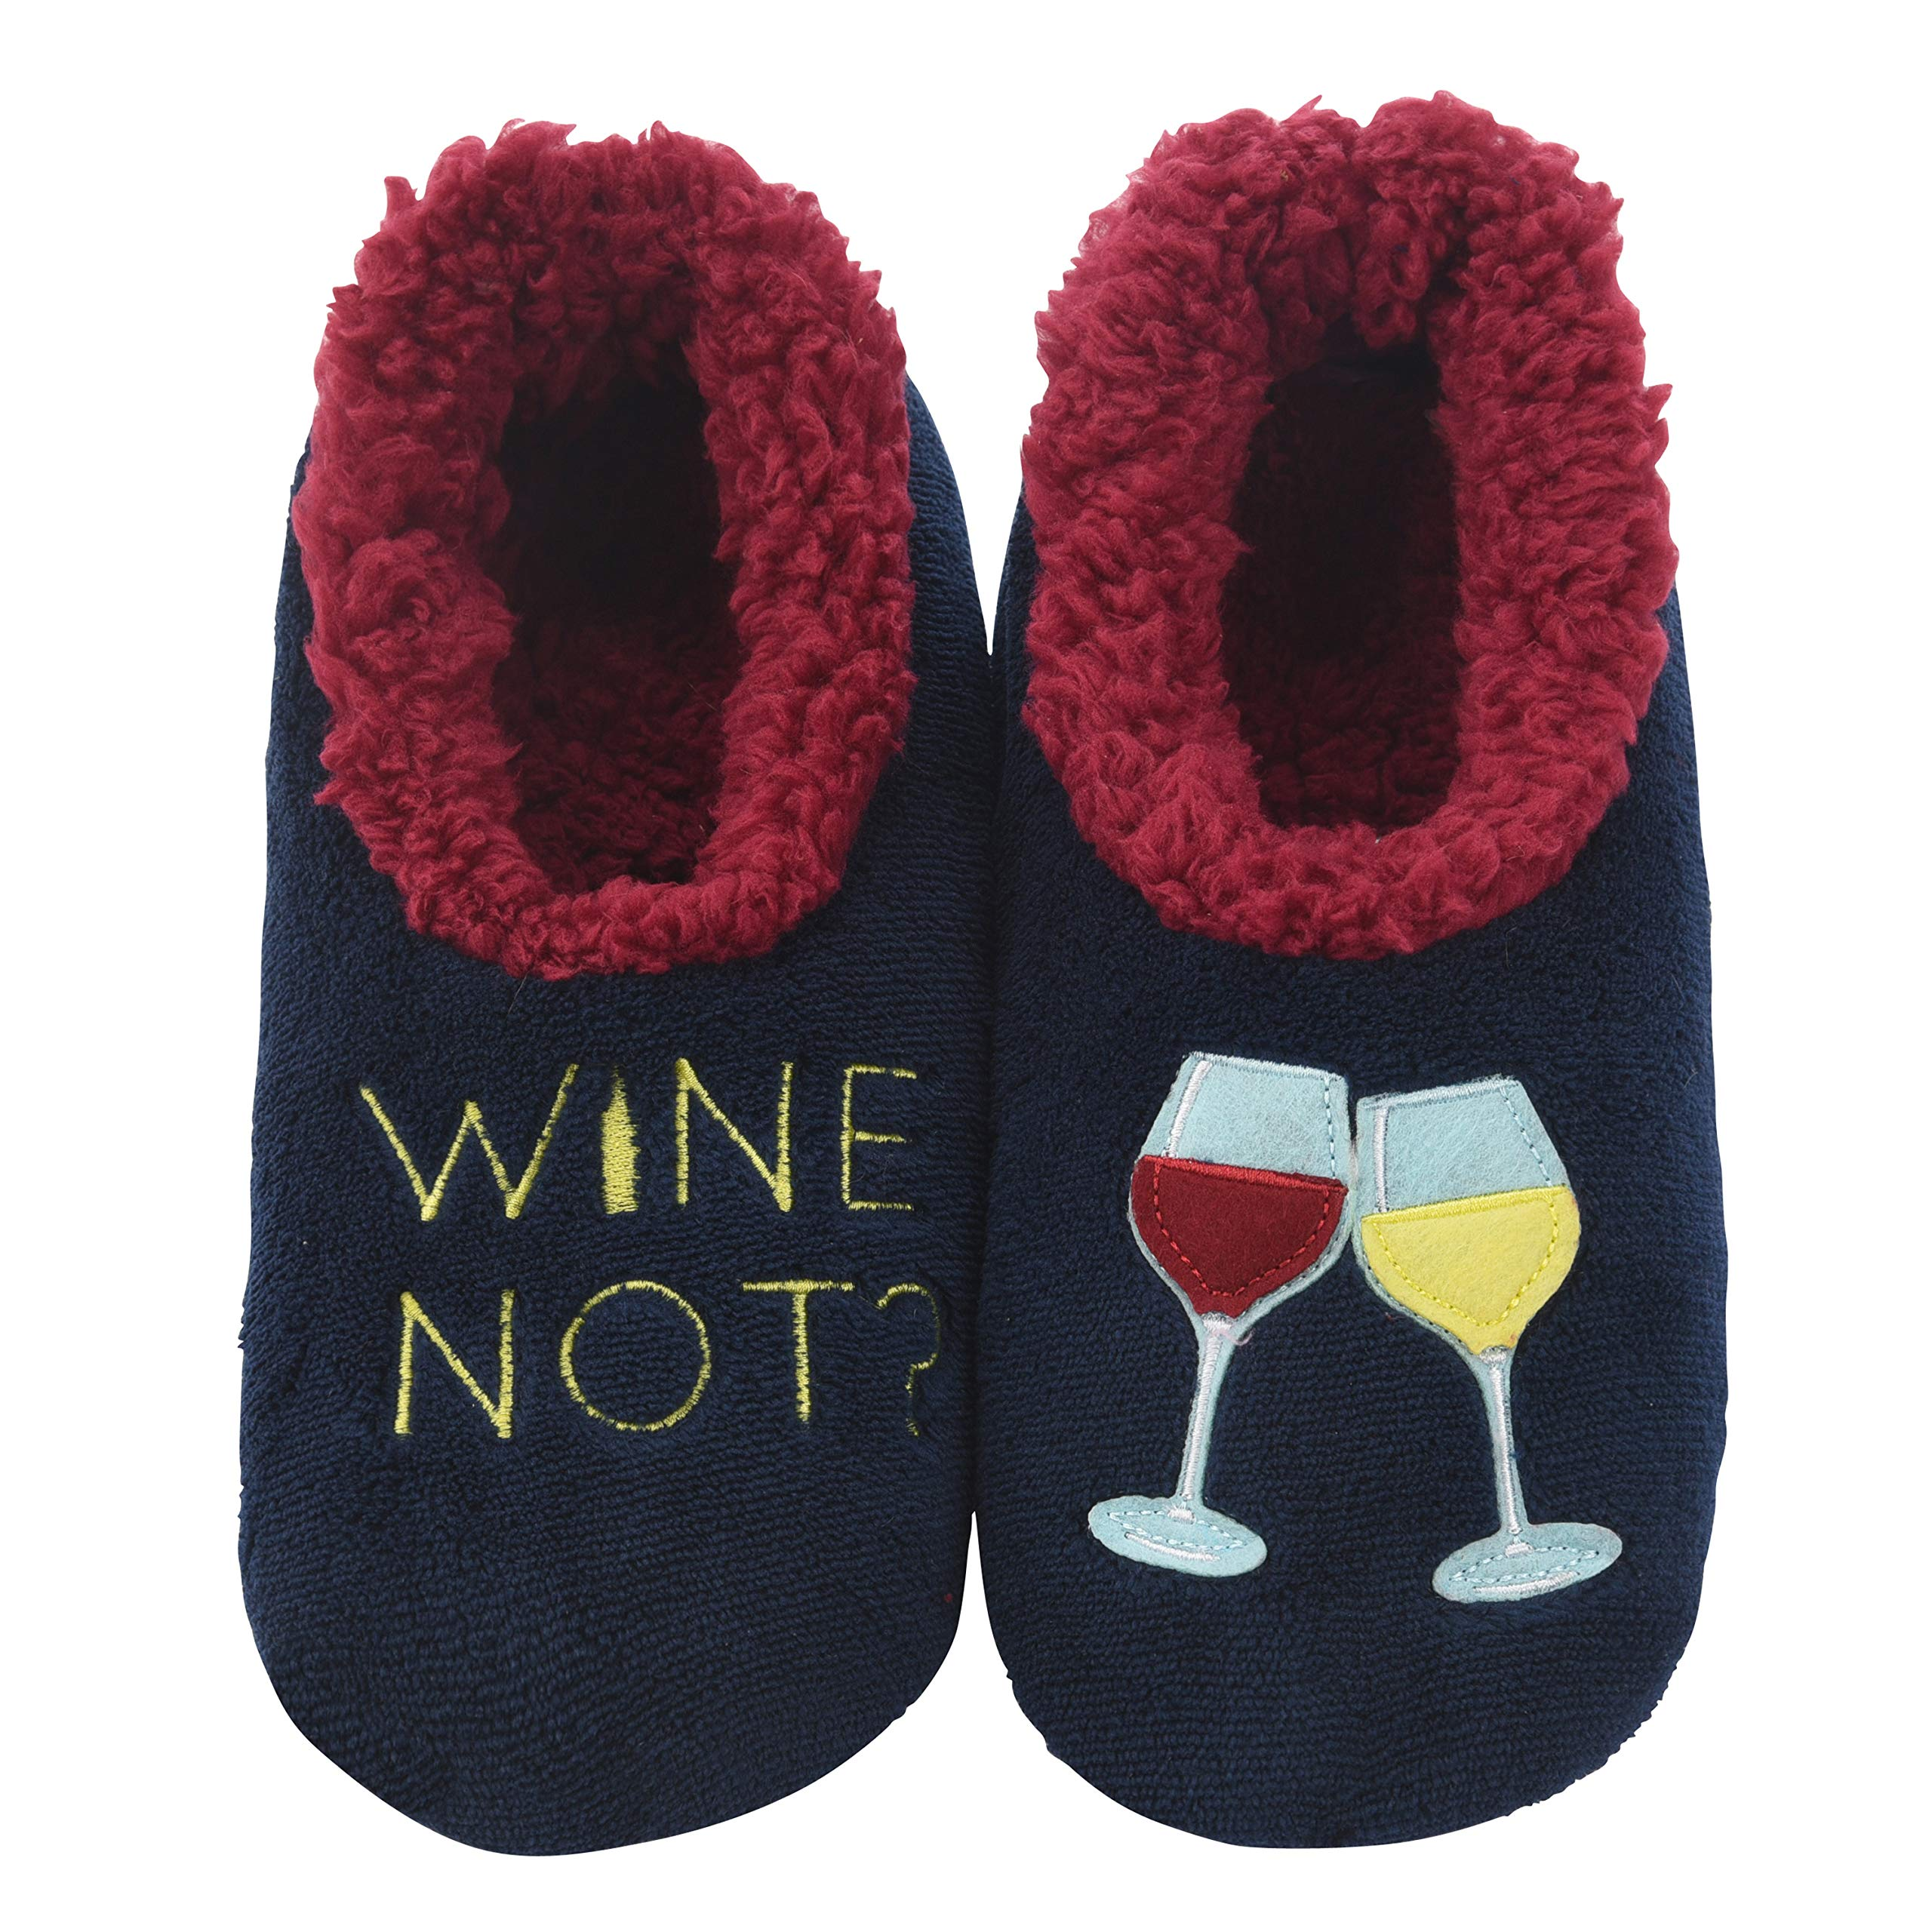 Snoozies Womens Classic Splitz Applique Slipper Socks   Wine Not?   X-Large by Snoozies